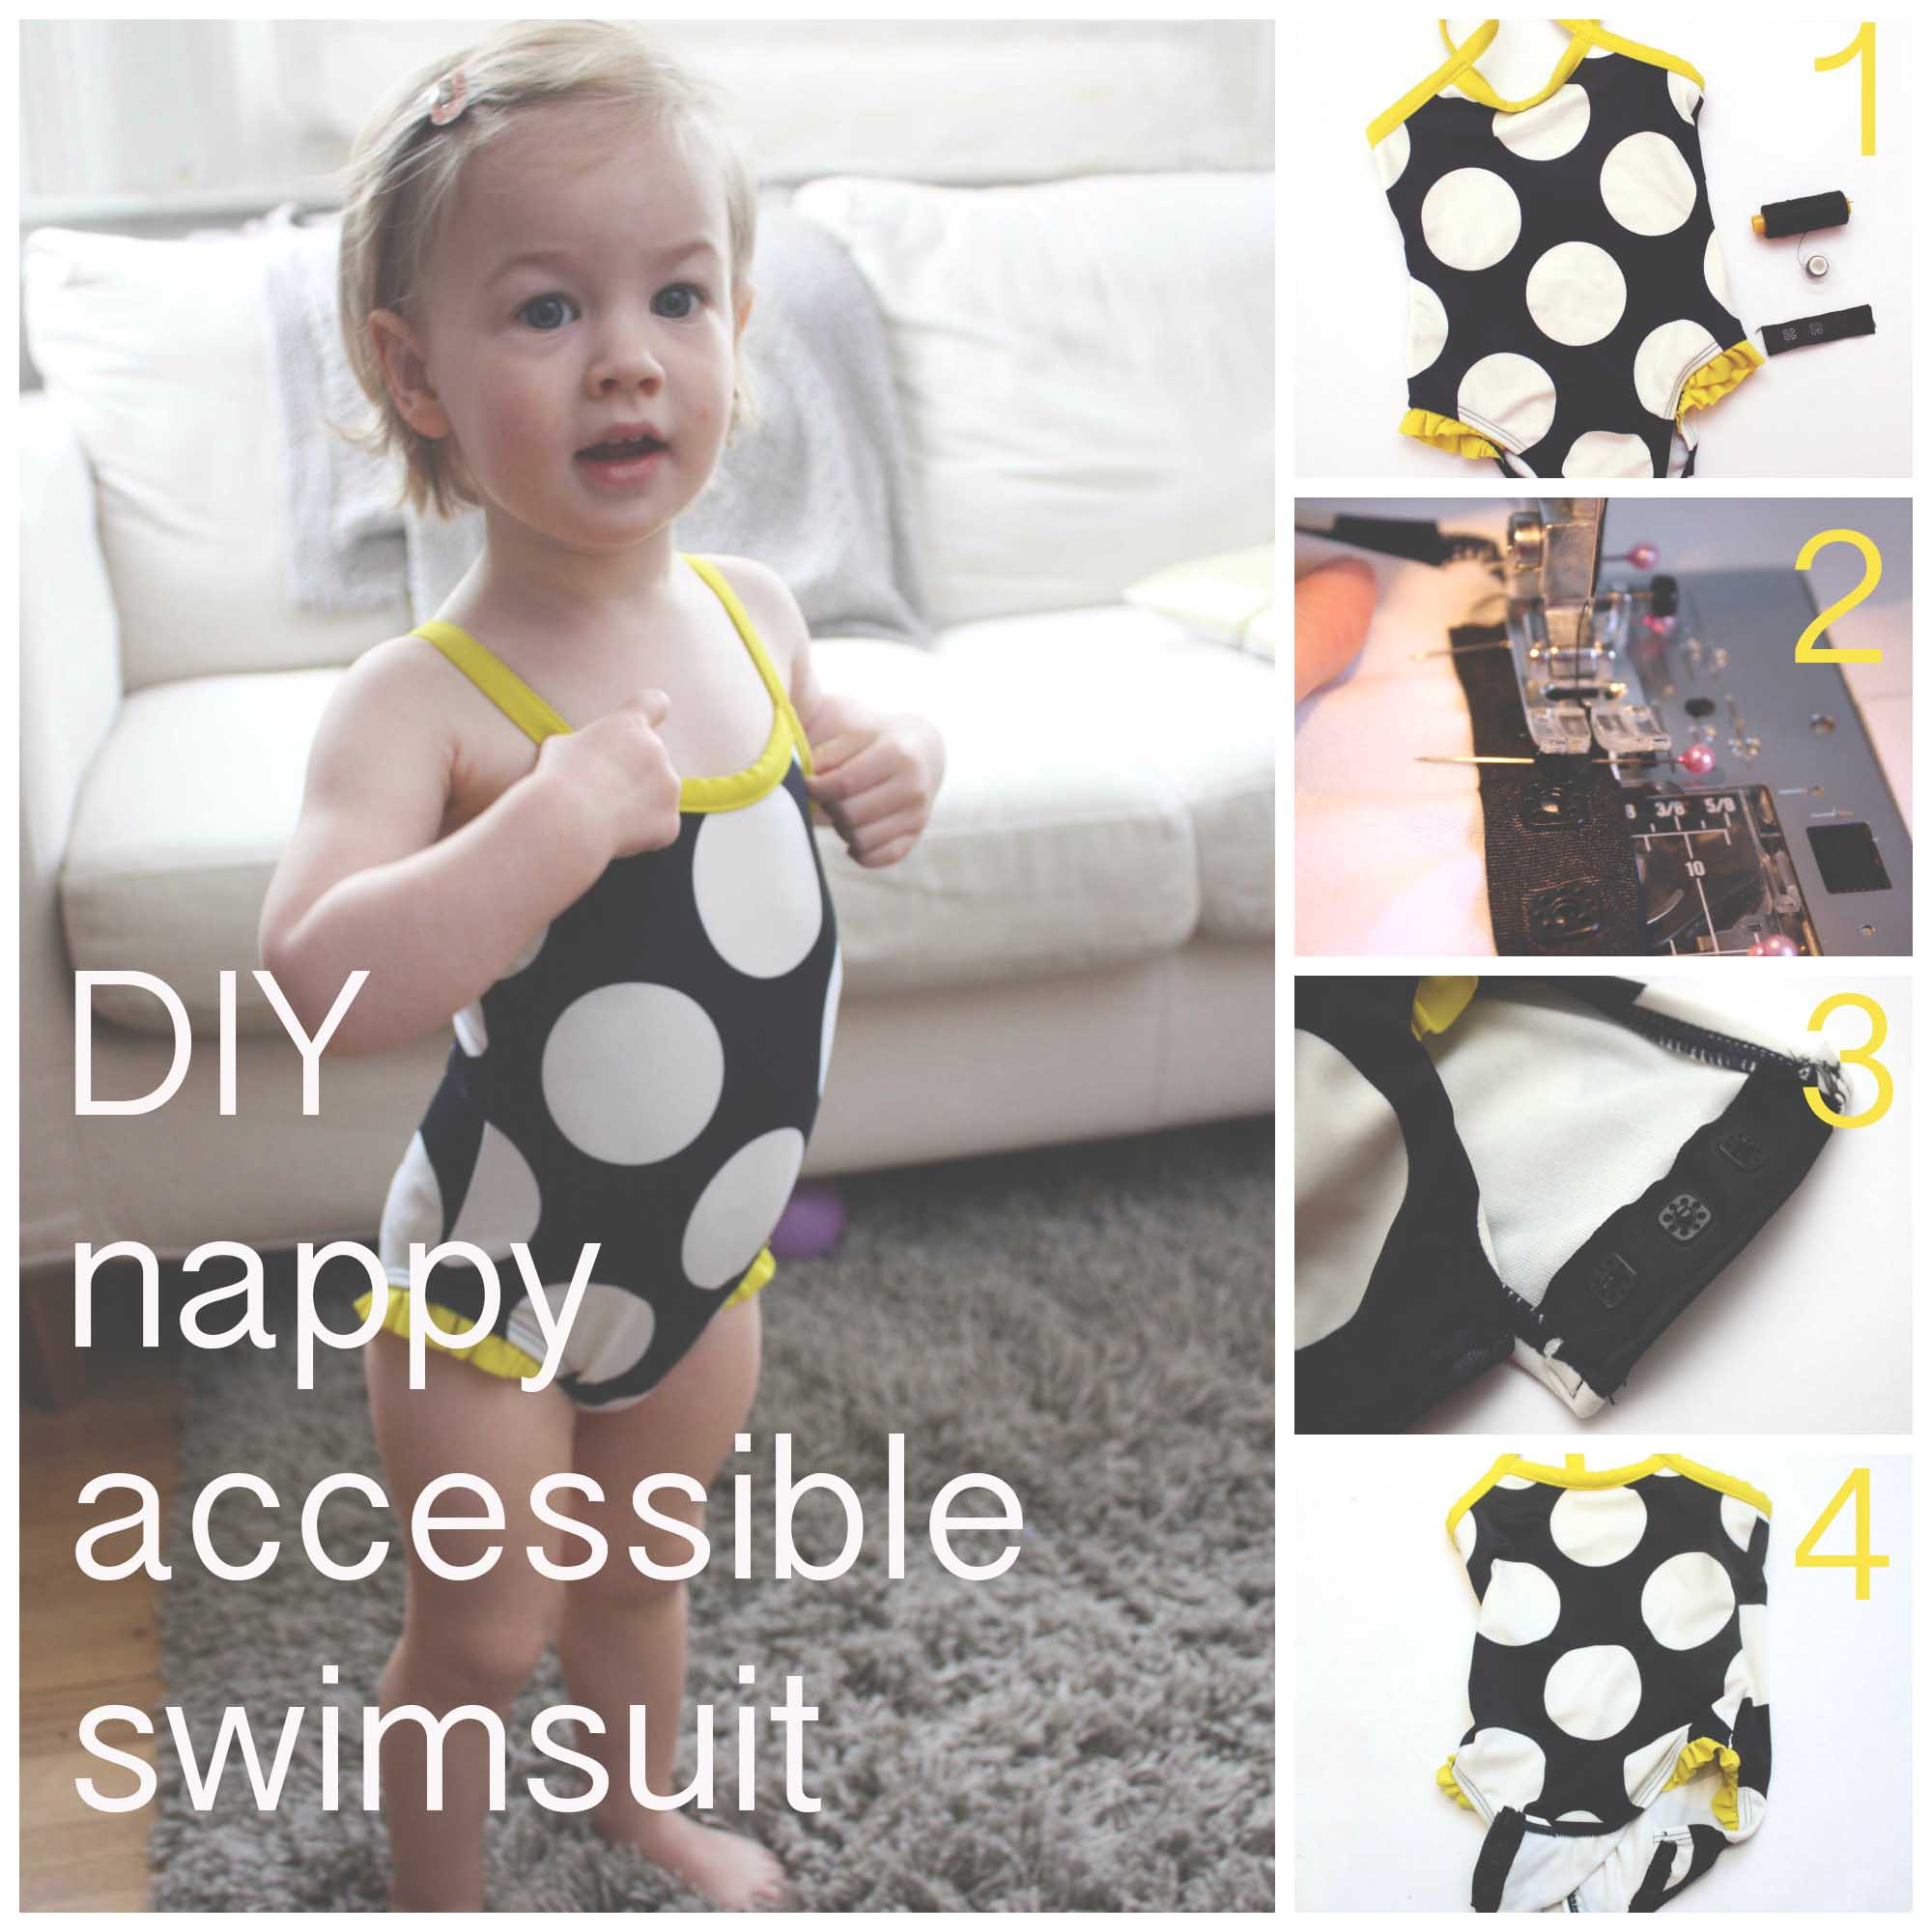 meg-made DIY nappy accessible swimsuit